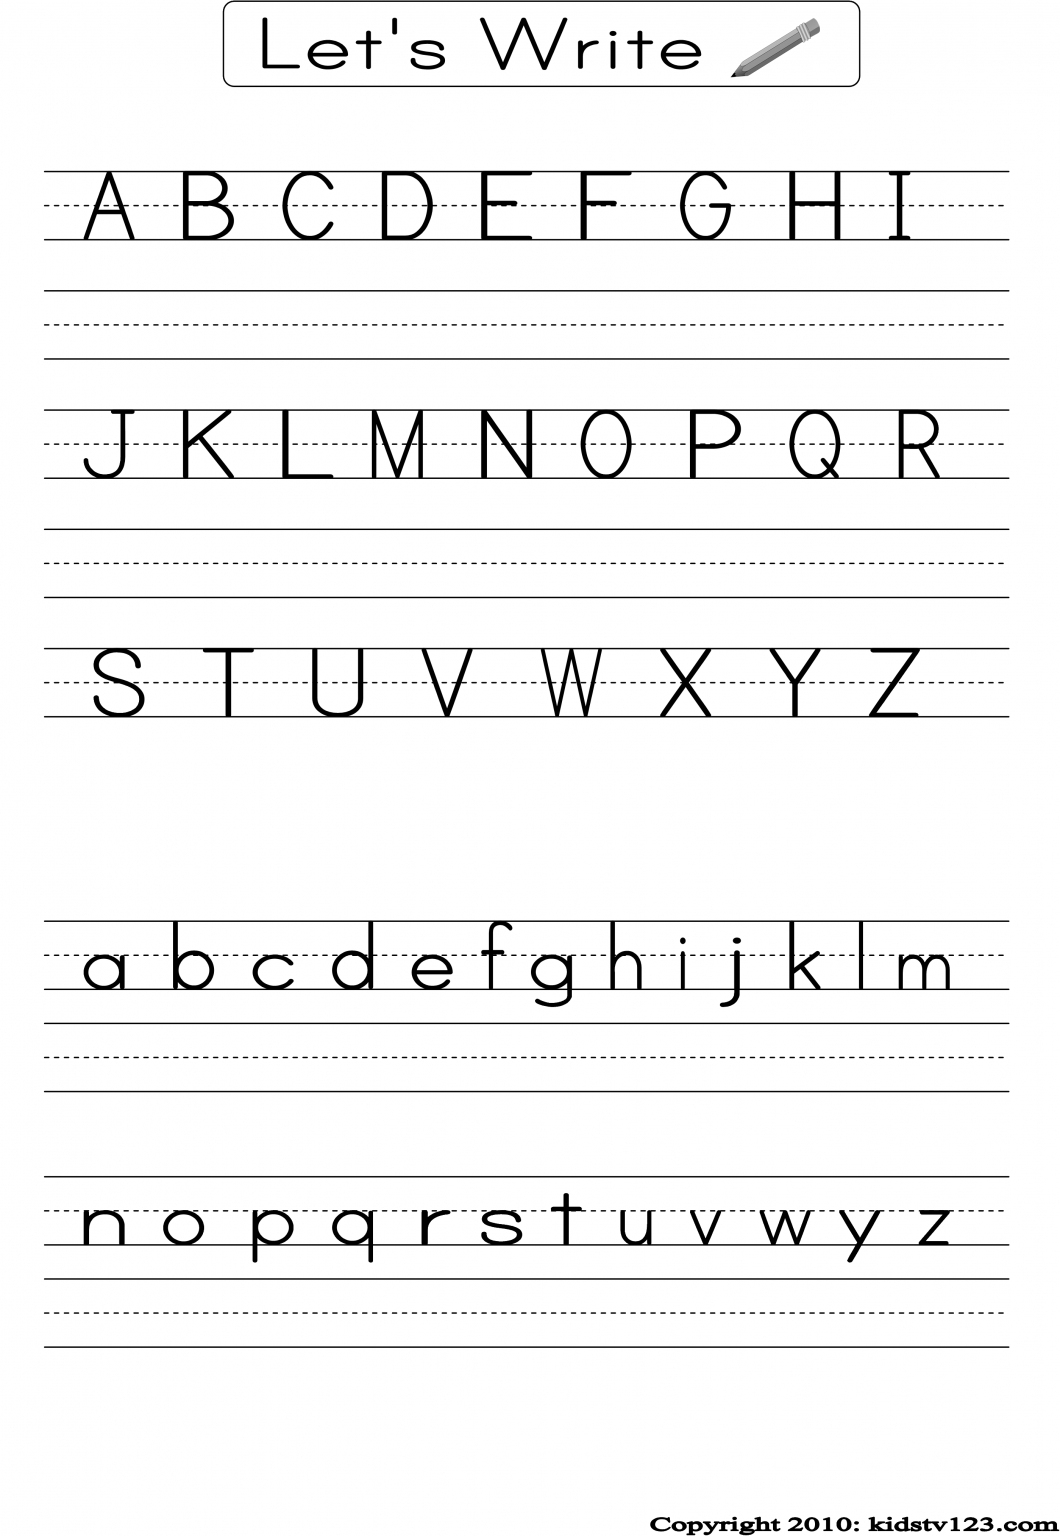 Preschool Writing Sheets – With Letter Tracing Worksheets Also Free | Free Printable Name Tracing Worksheets